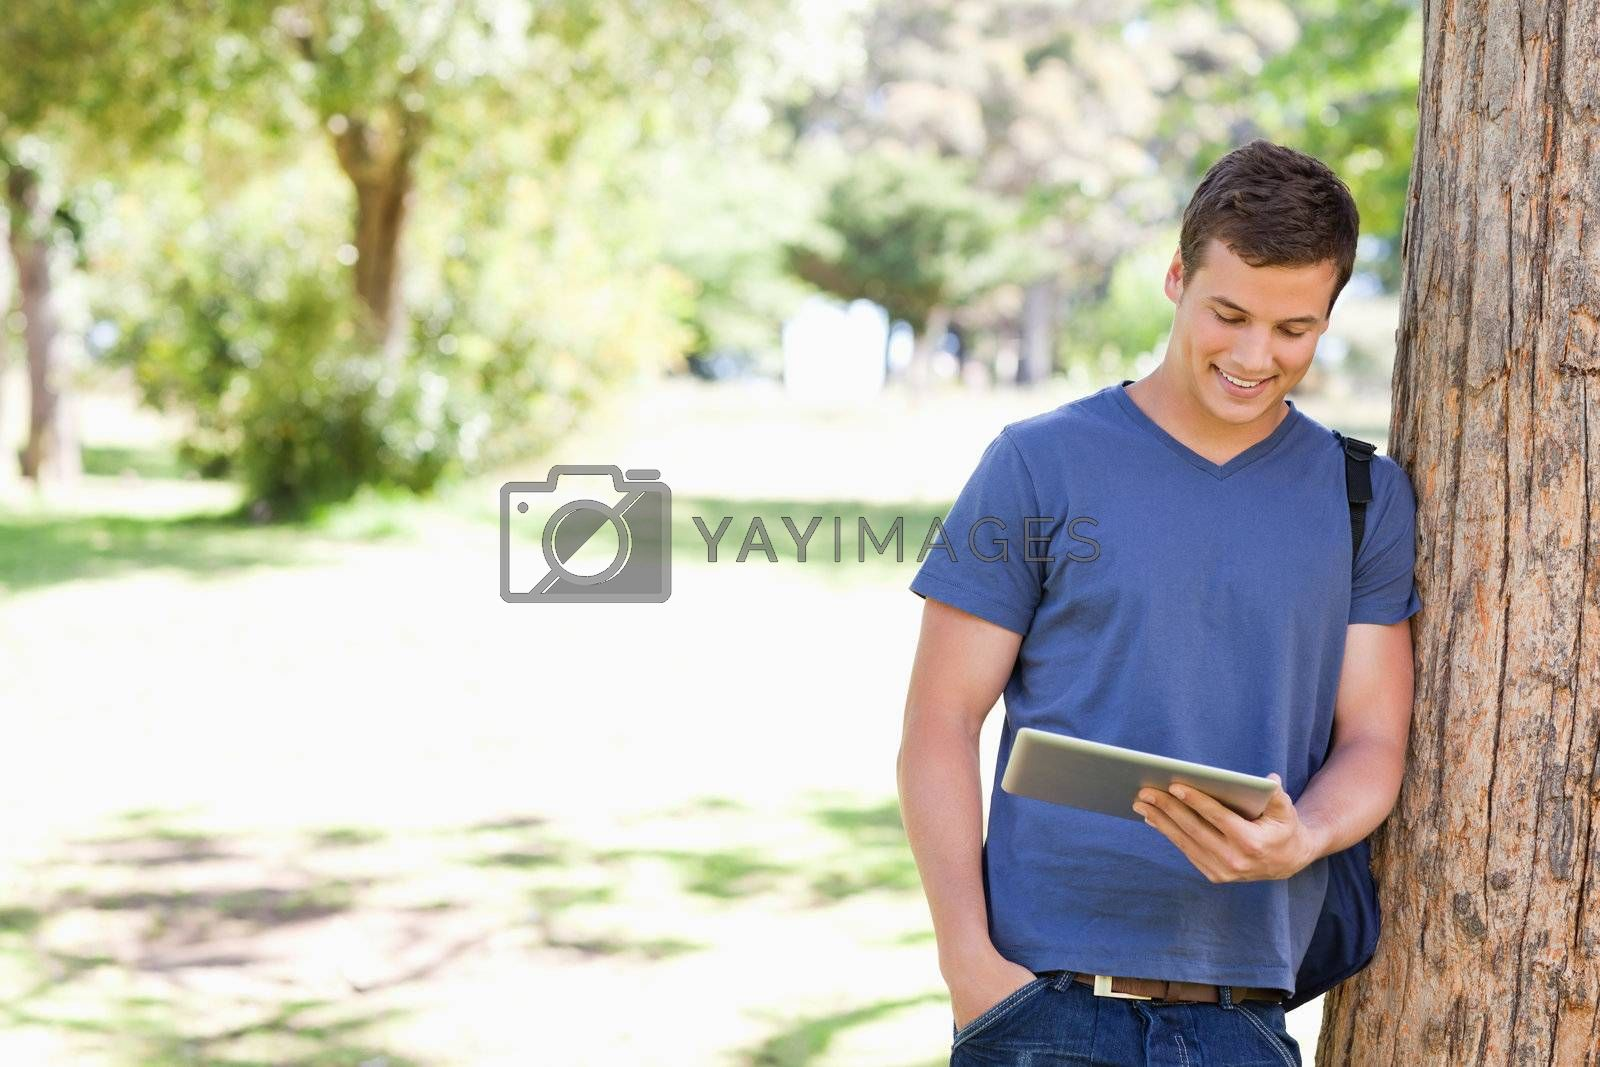 Student leaning against a tree with a touch pad in a park